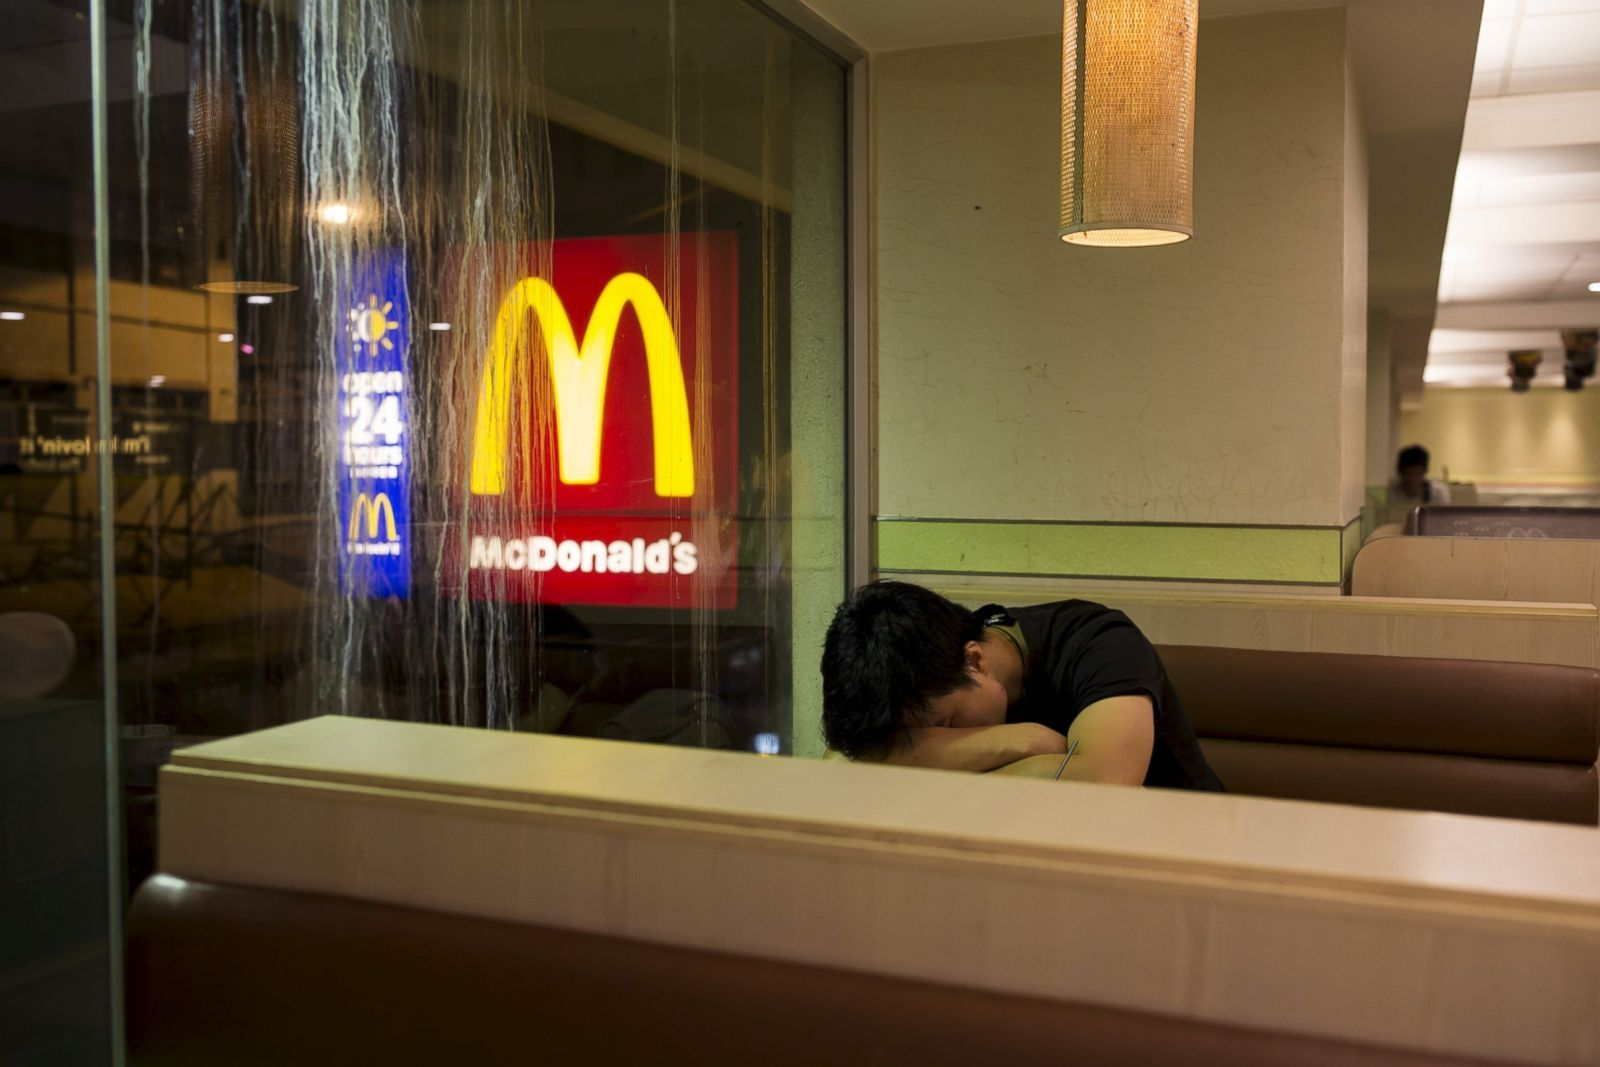 """Homelessness has long been a problem in Hong Kong due to high rents and soaring property prices. In recent years, the opening of McDonald's 24-hour fast food restaurants all over the city has presented an alternative for homeless people known as """"McRefugees"""" or """"McSleepers"""" to spend the night in a safer and more comfortable environment than the street. Pictured: A man sleeps at a 24-hour McDonald's restaurant in Hong Kong, China, Nov. 10, 2015."""